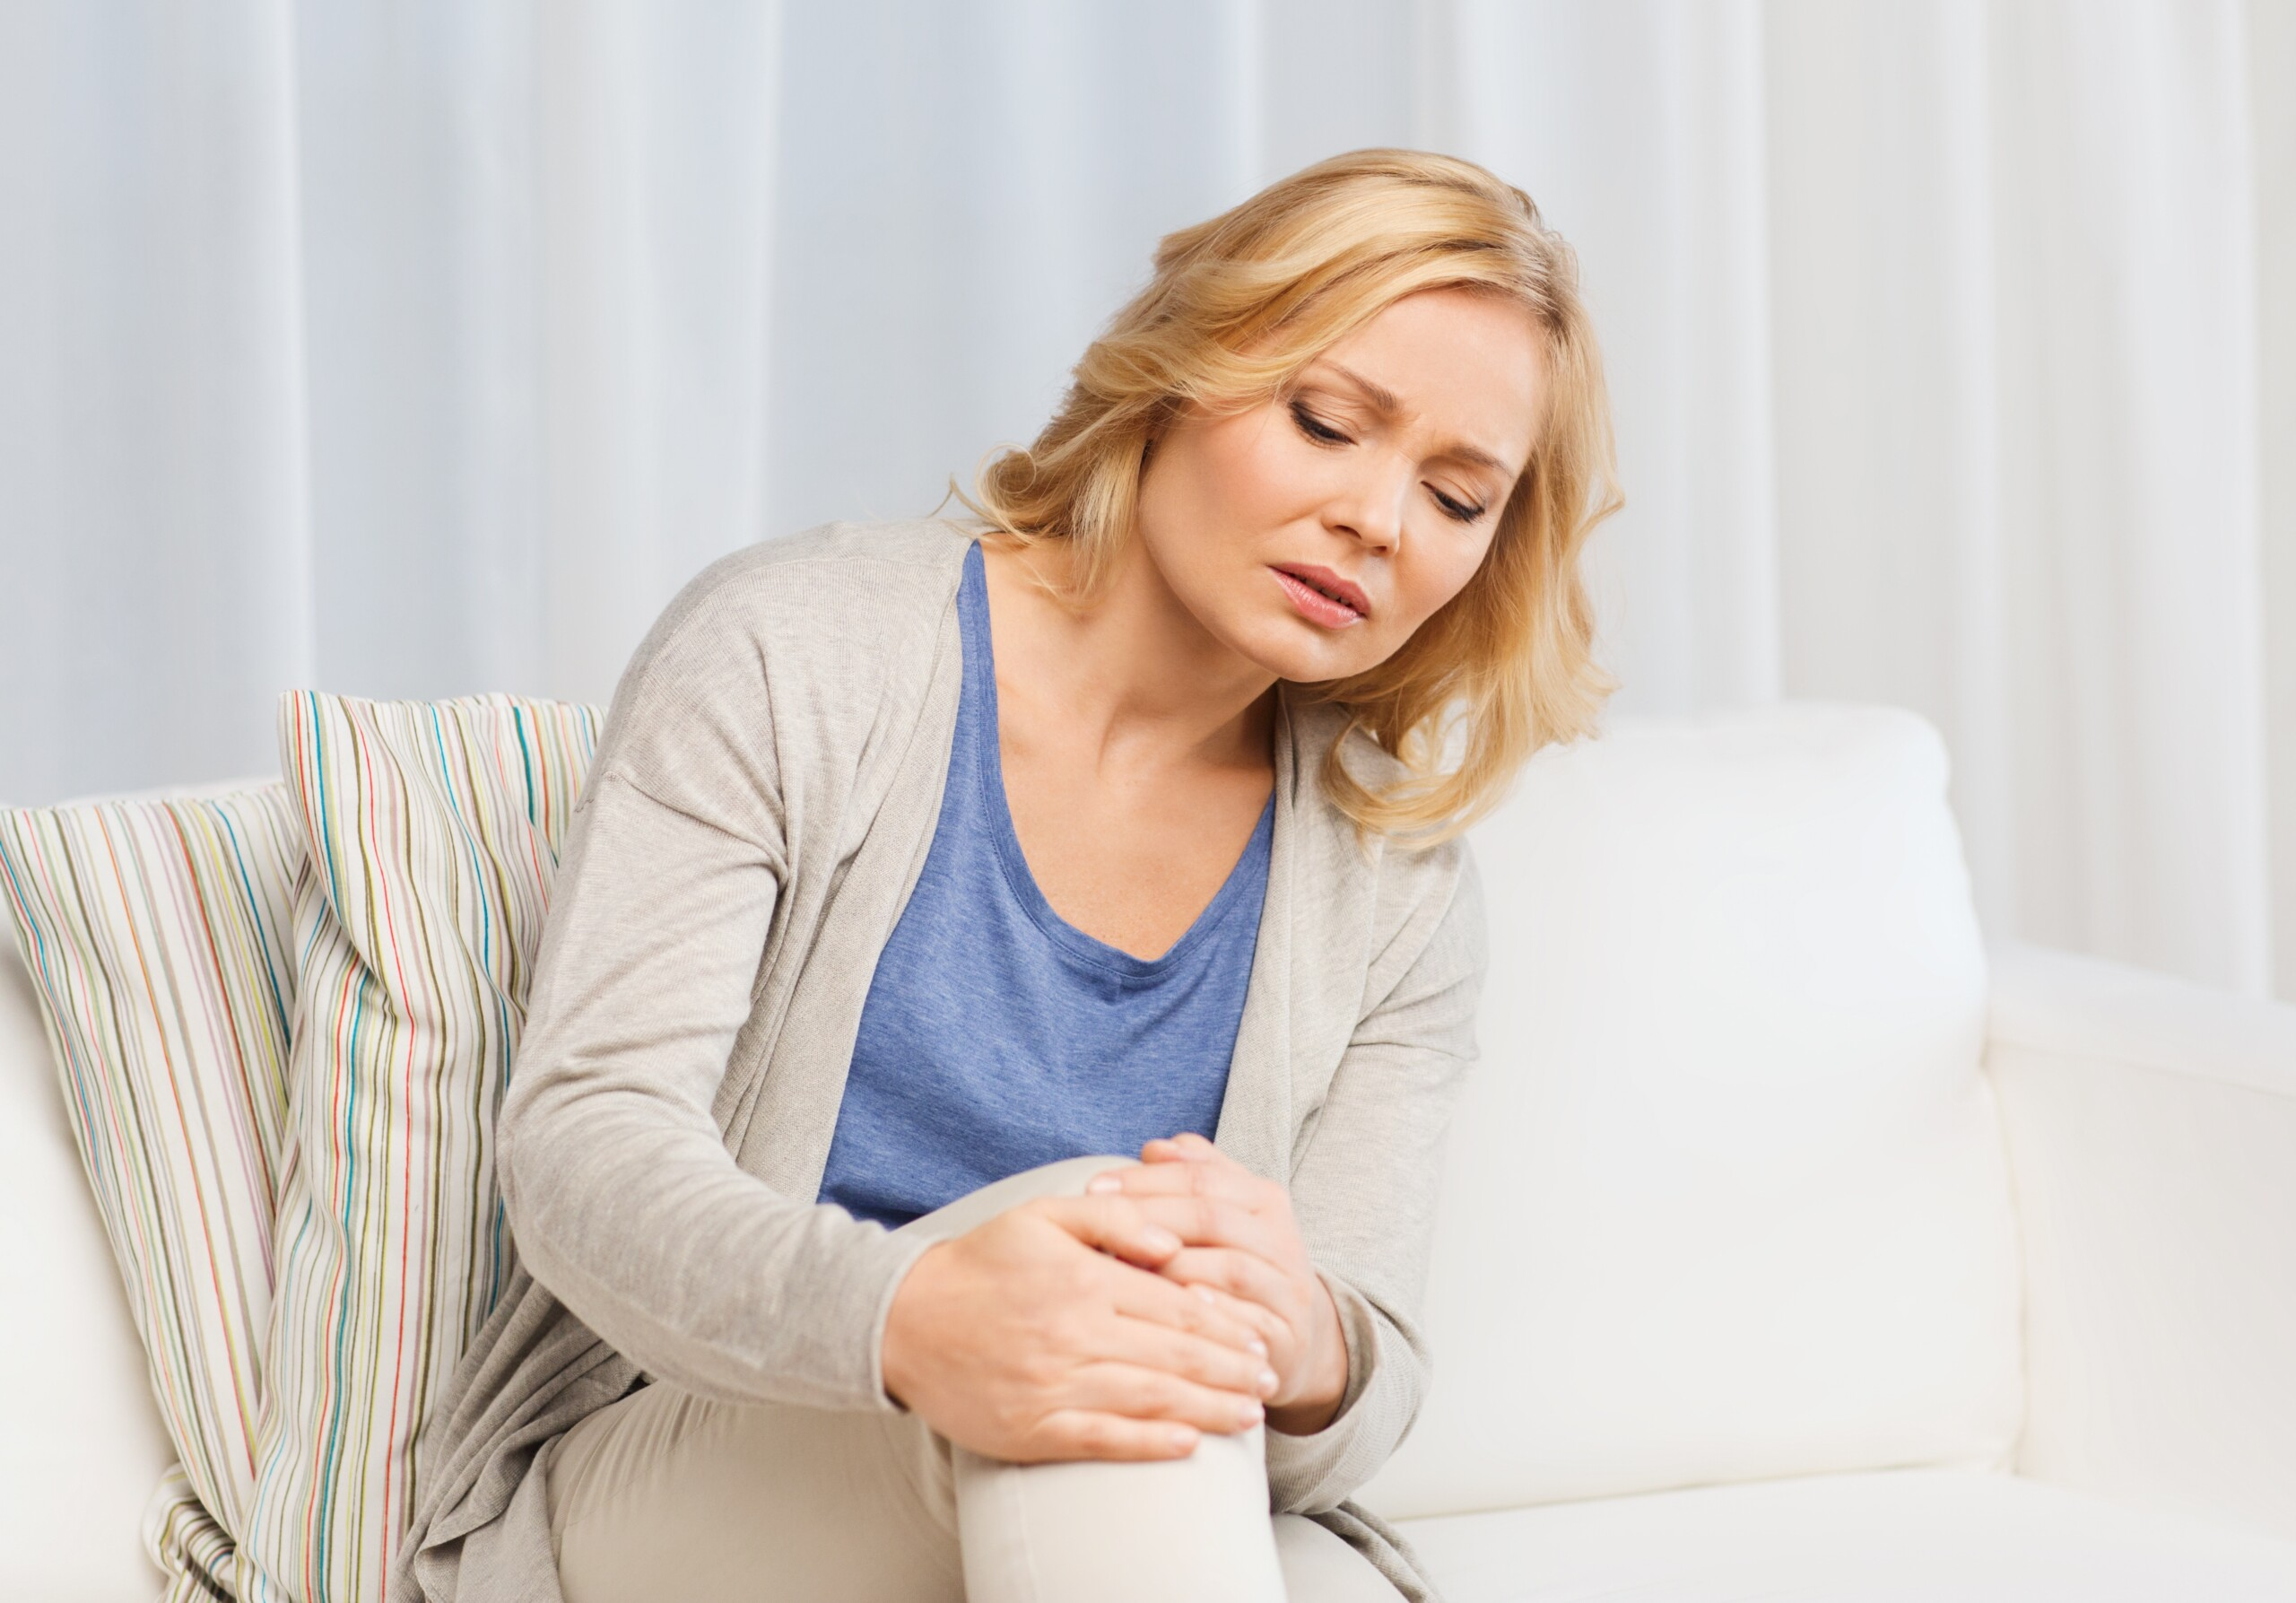 Can Frequent Staircase Use Cause Knee Arthritis?